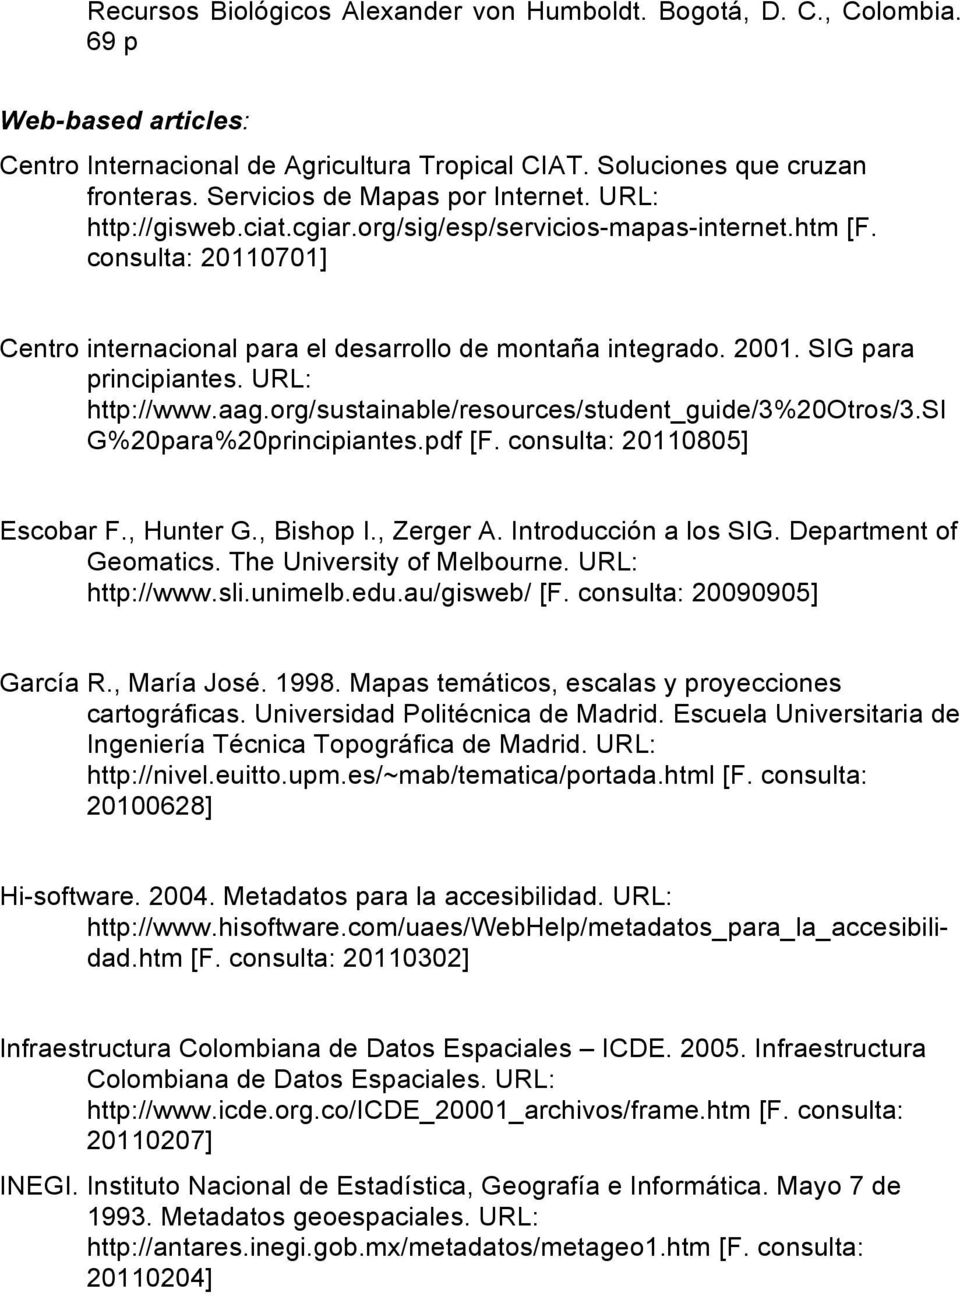 SIG para principiantes. URL: http://www.aag.org/sustainable/resources/student_guide/3%20otros/3.si G%20para%20principiantes.pdf [F. consulta: 20110805] Escobar F., Hunter G., Bishop I., Zerger A.